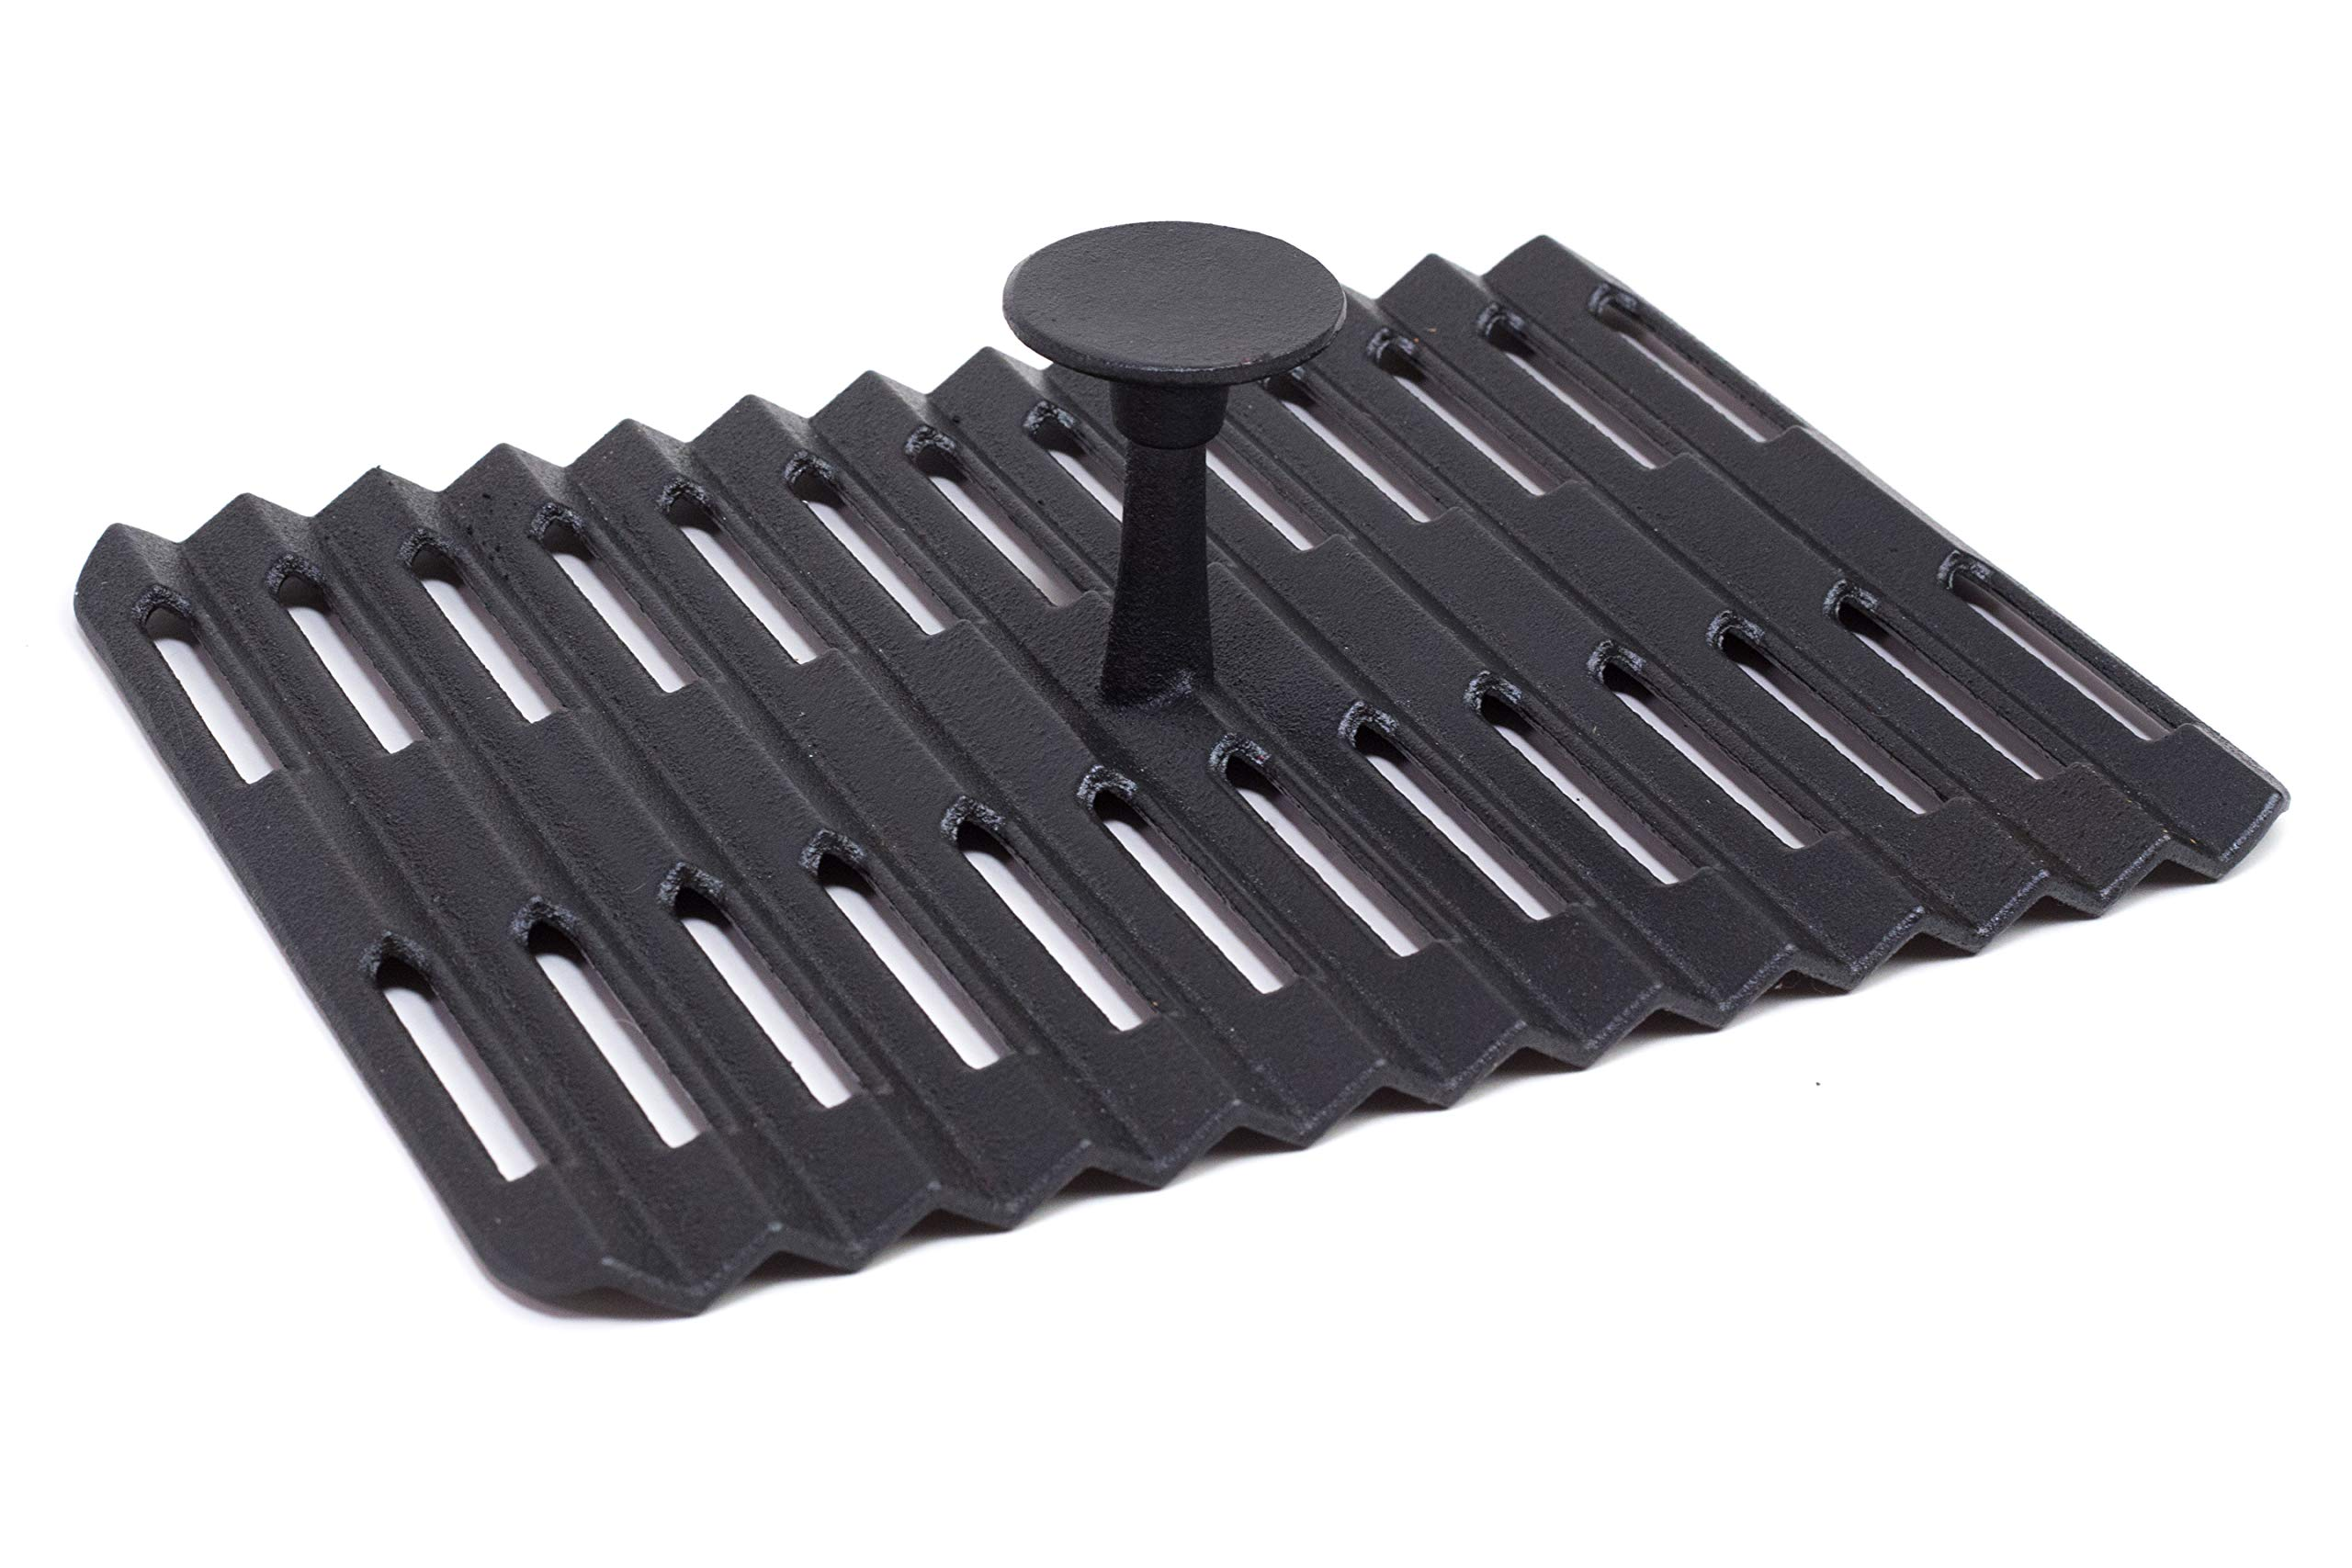 Grillville USA Cast Iron Grill Press, 9 x 12 inches, Heavy-Gauge Cooking Weight, Non-Stick Porcelain Enamel Coating, Vented Design Keeps Food Crisp, Use on The Stove-top or Grill